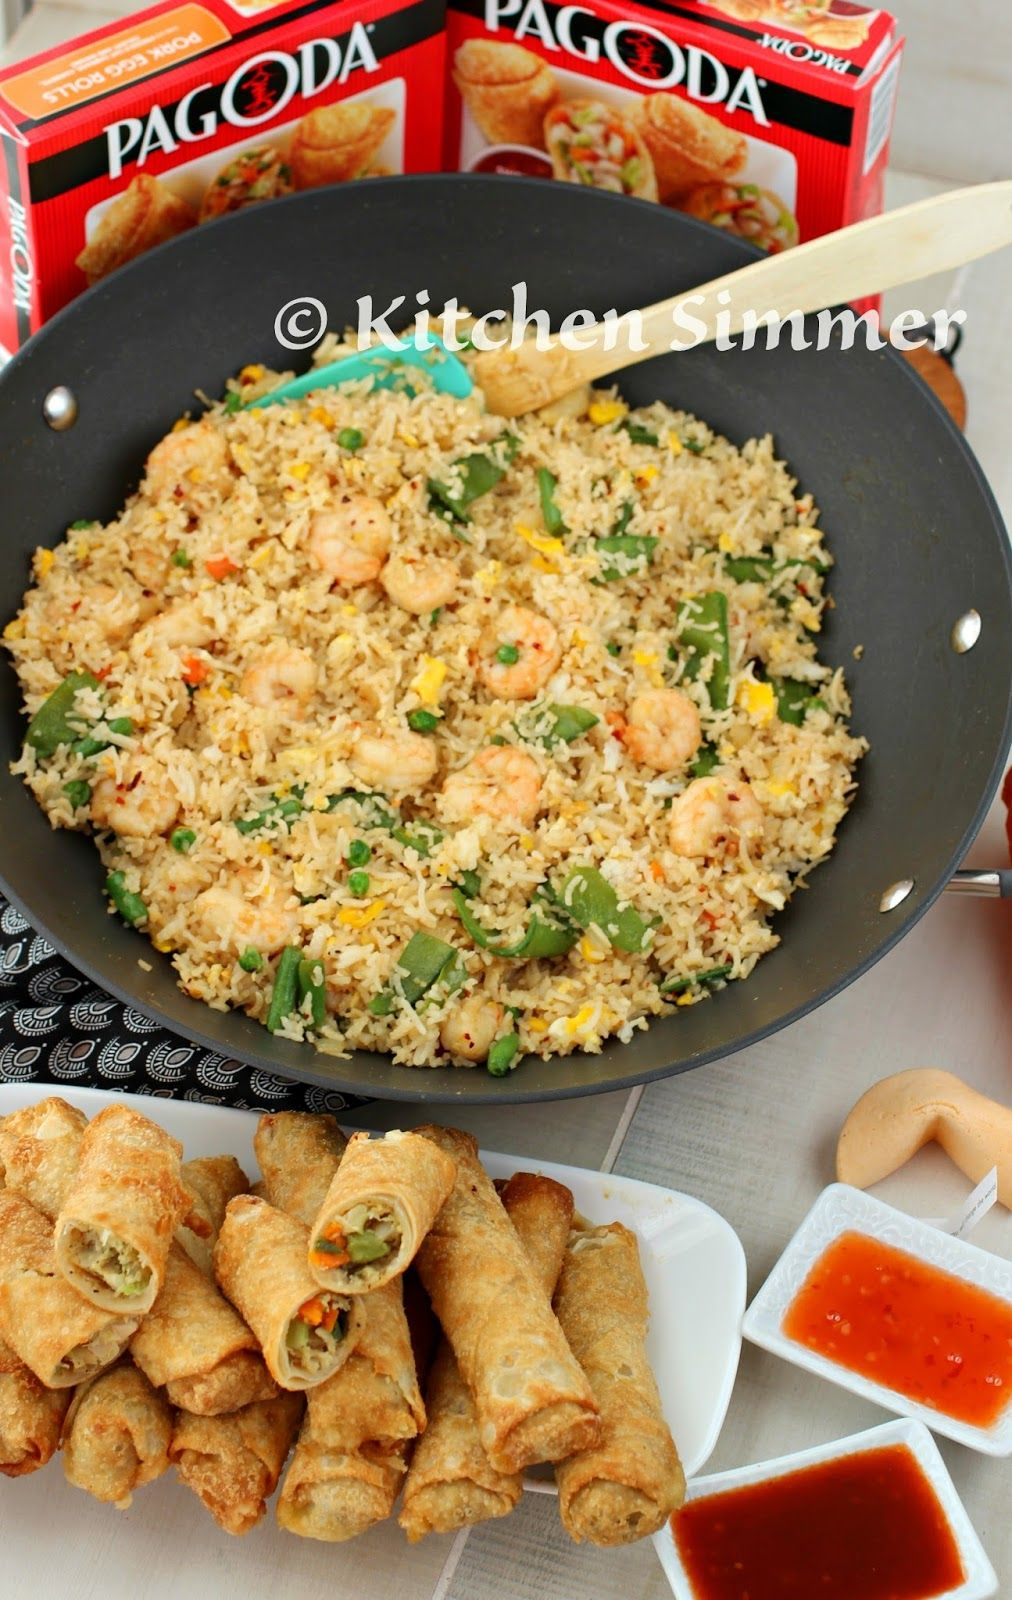 Kitchen simmer easy shrimp fried rice with pagoda egg rolls kitchen simmer easy shrimp fried rice with pagoda egg rolls frozenfromscratch collectivebias ccuart Gallery